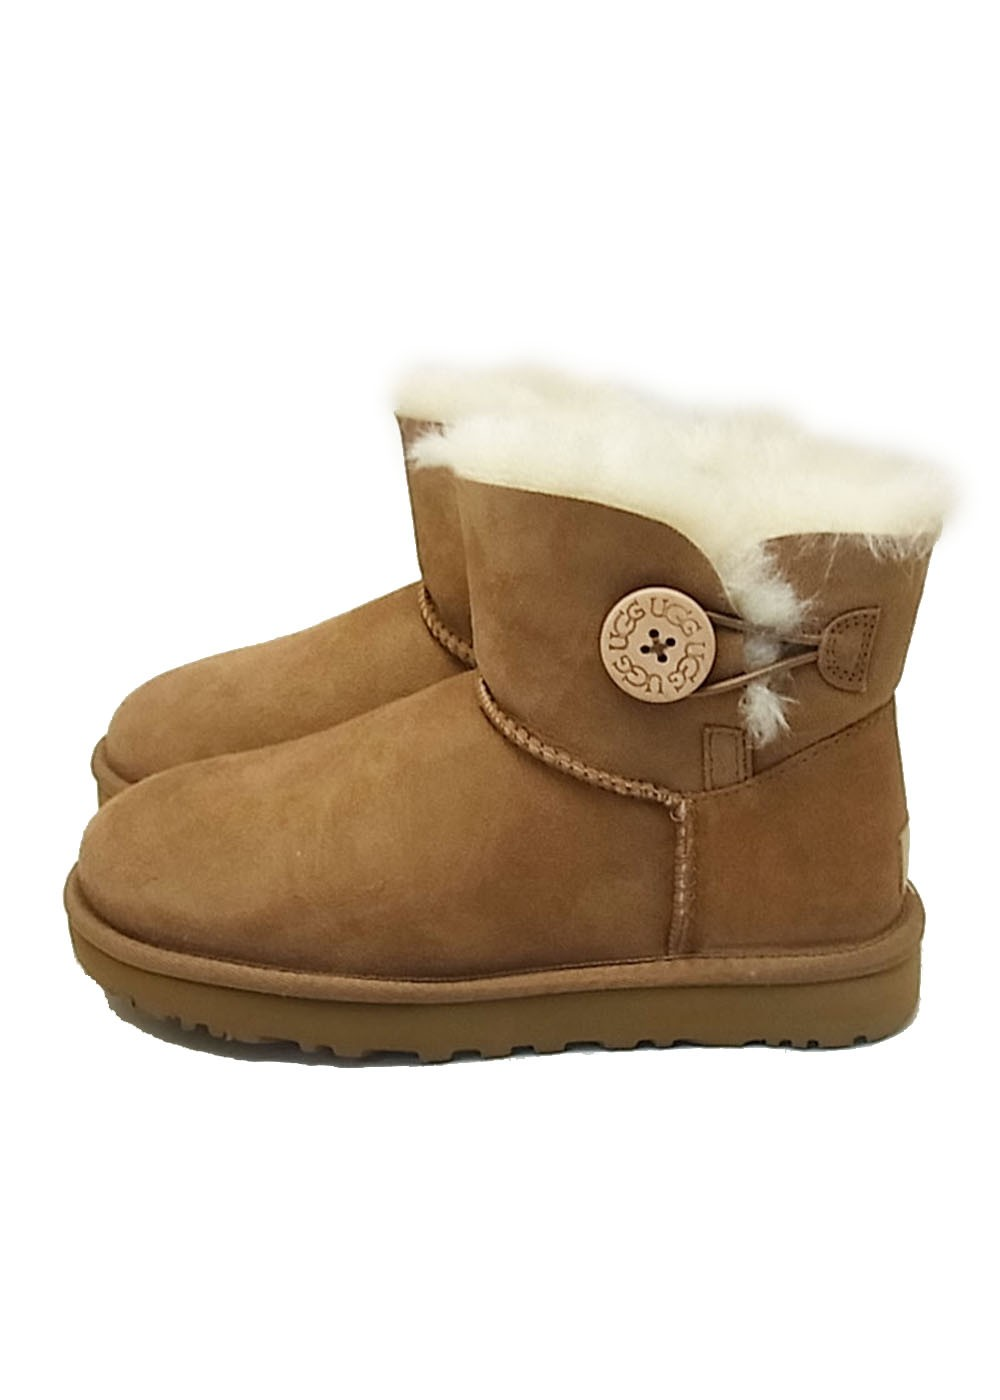 MINI BAILEY BUTTON  II|CHESTNUT|ブーツ|UGG|最大30%OFF